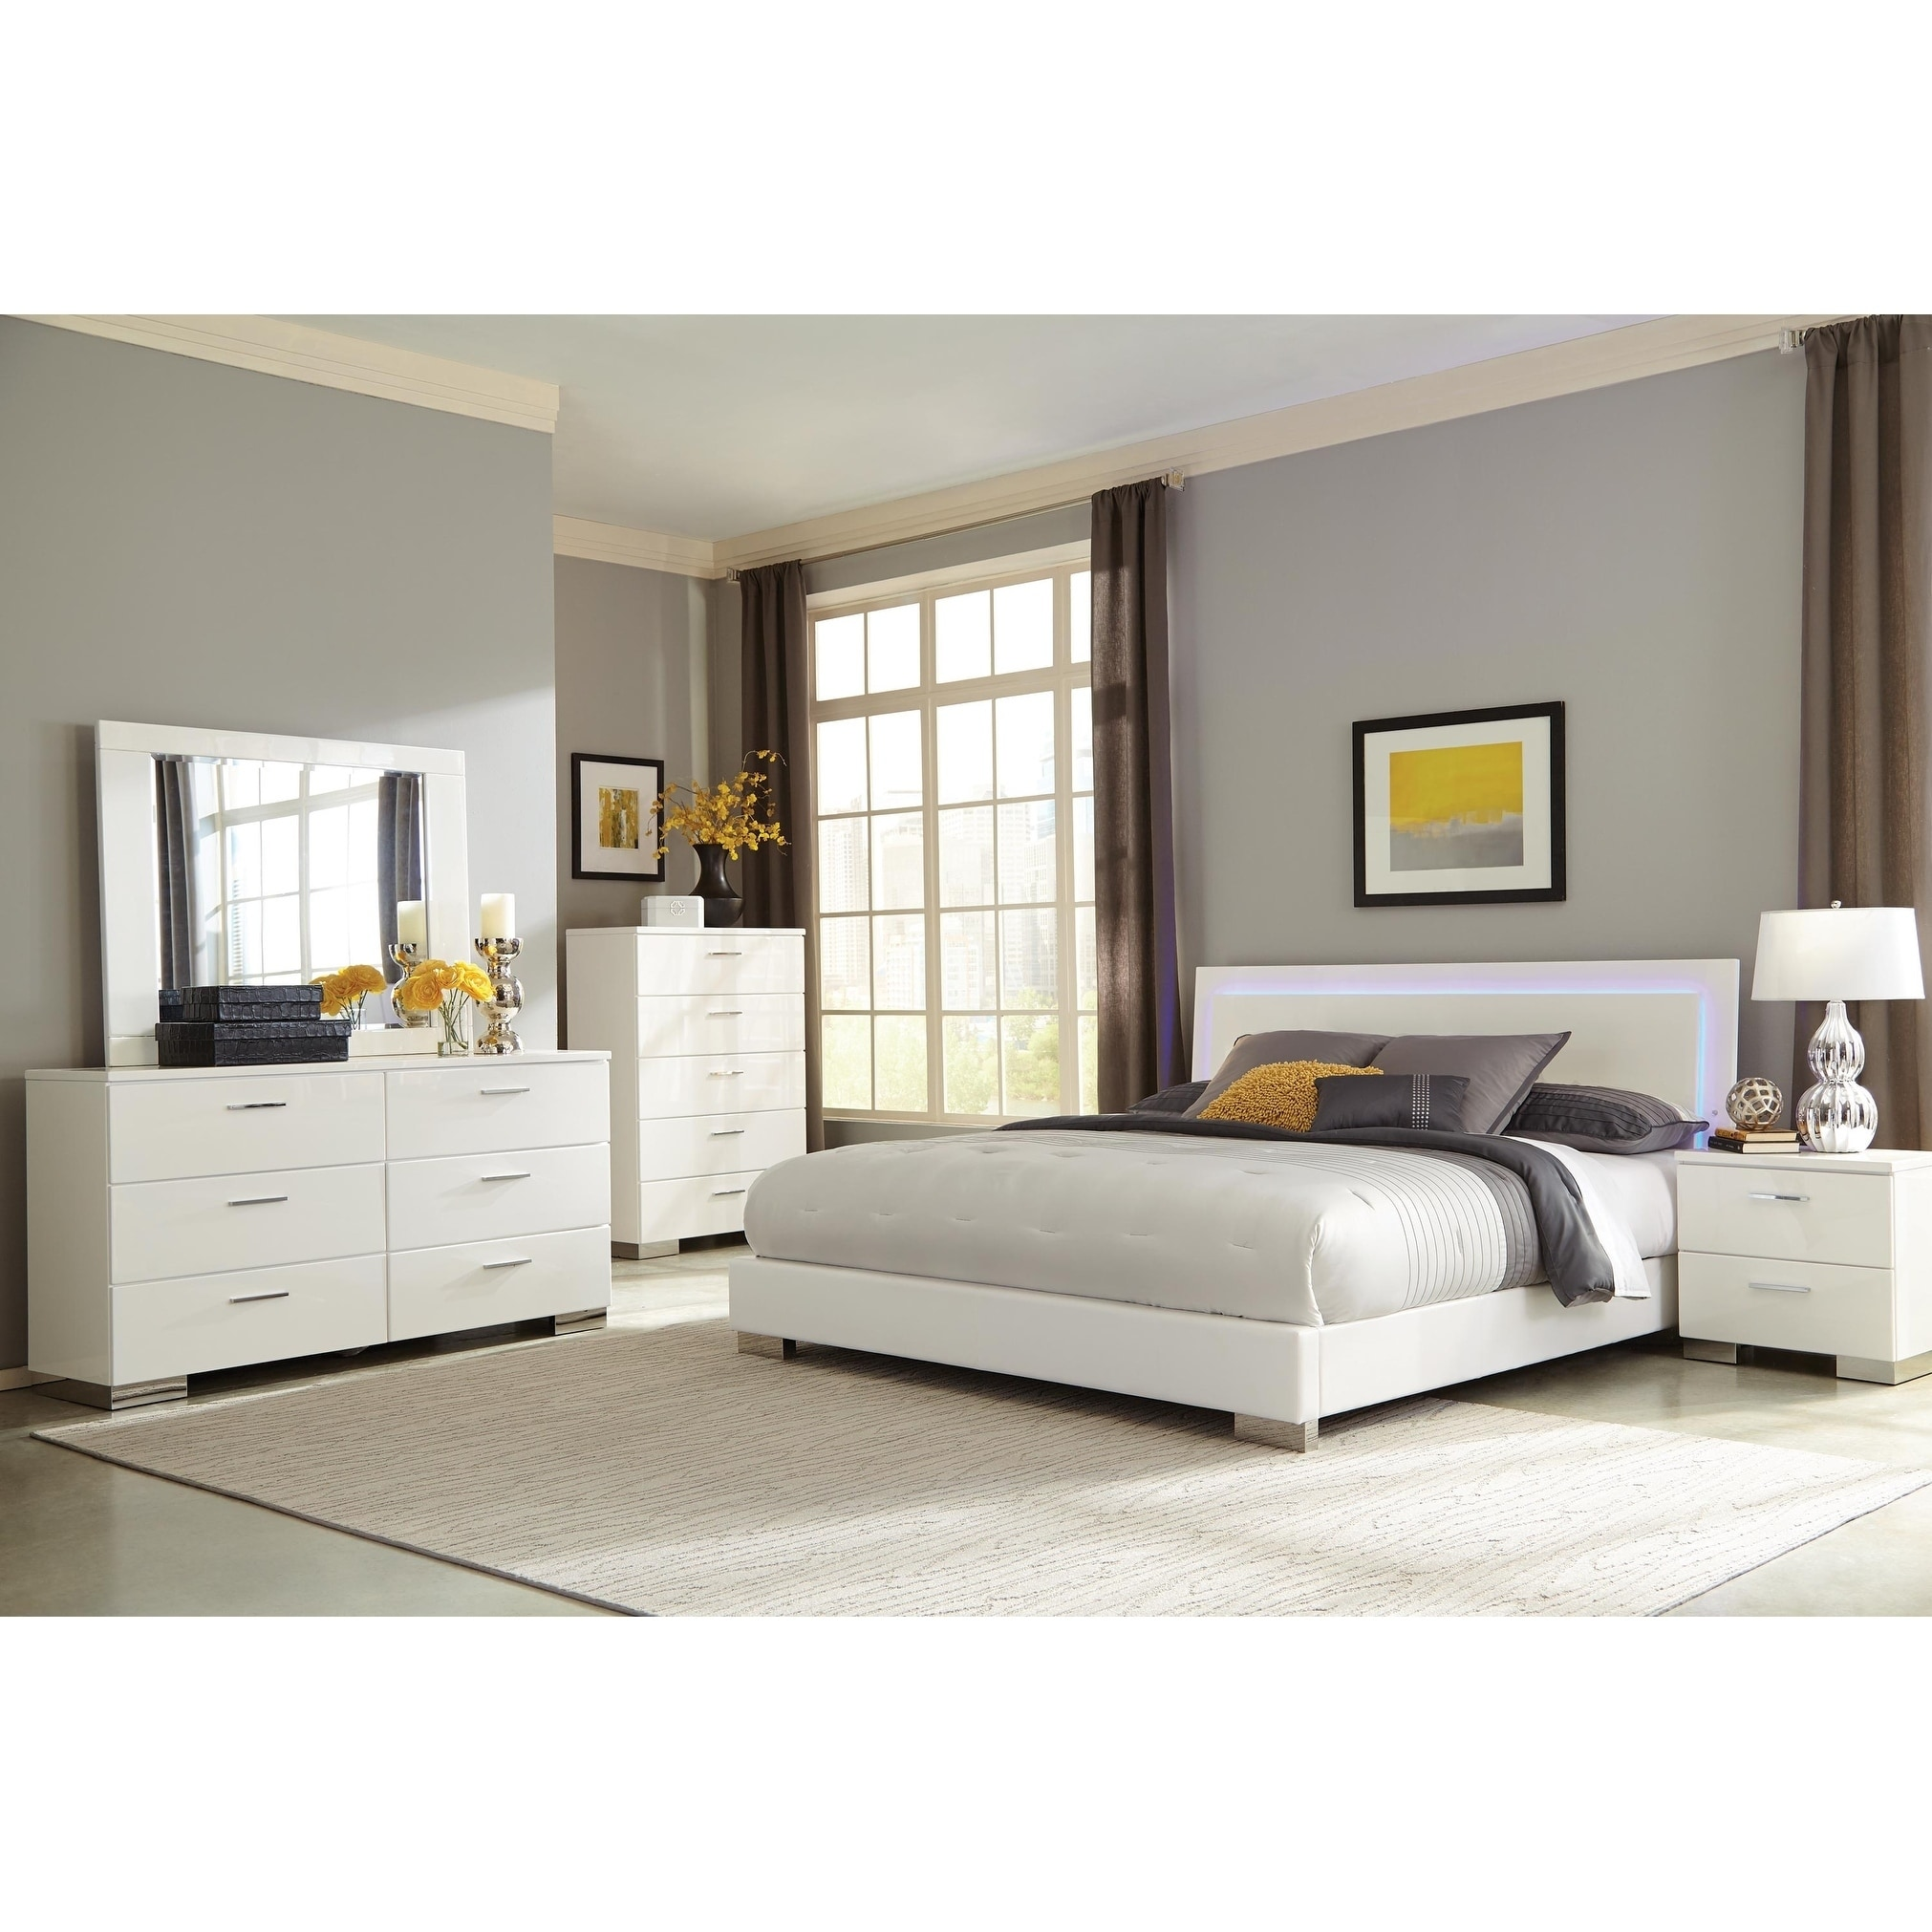 Arden Contemporary Glossy White 5 Piece Bedroom Set With Led Light Overstock 27591130